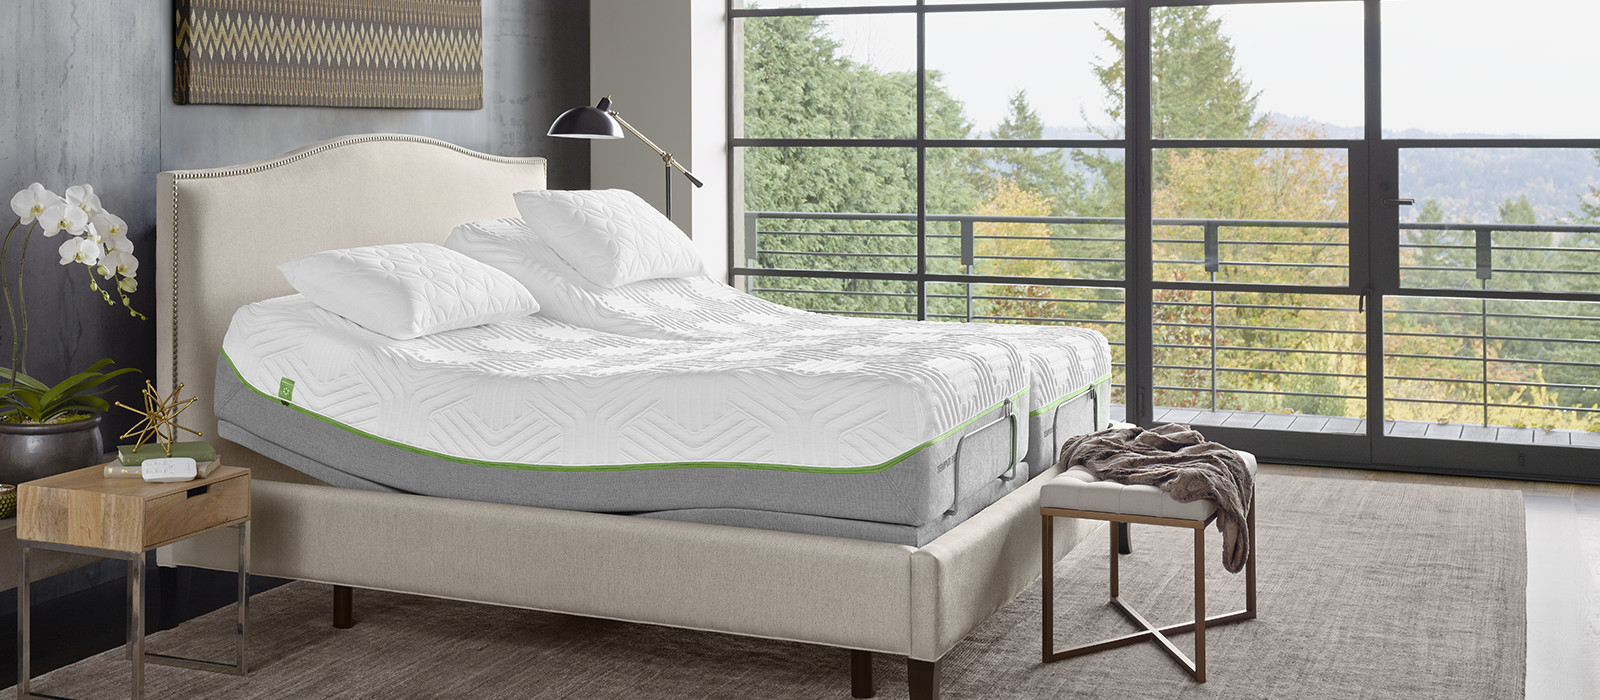 tempurergo plus adjustable base tempurpedic - King Size Tempurpedic